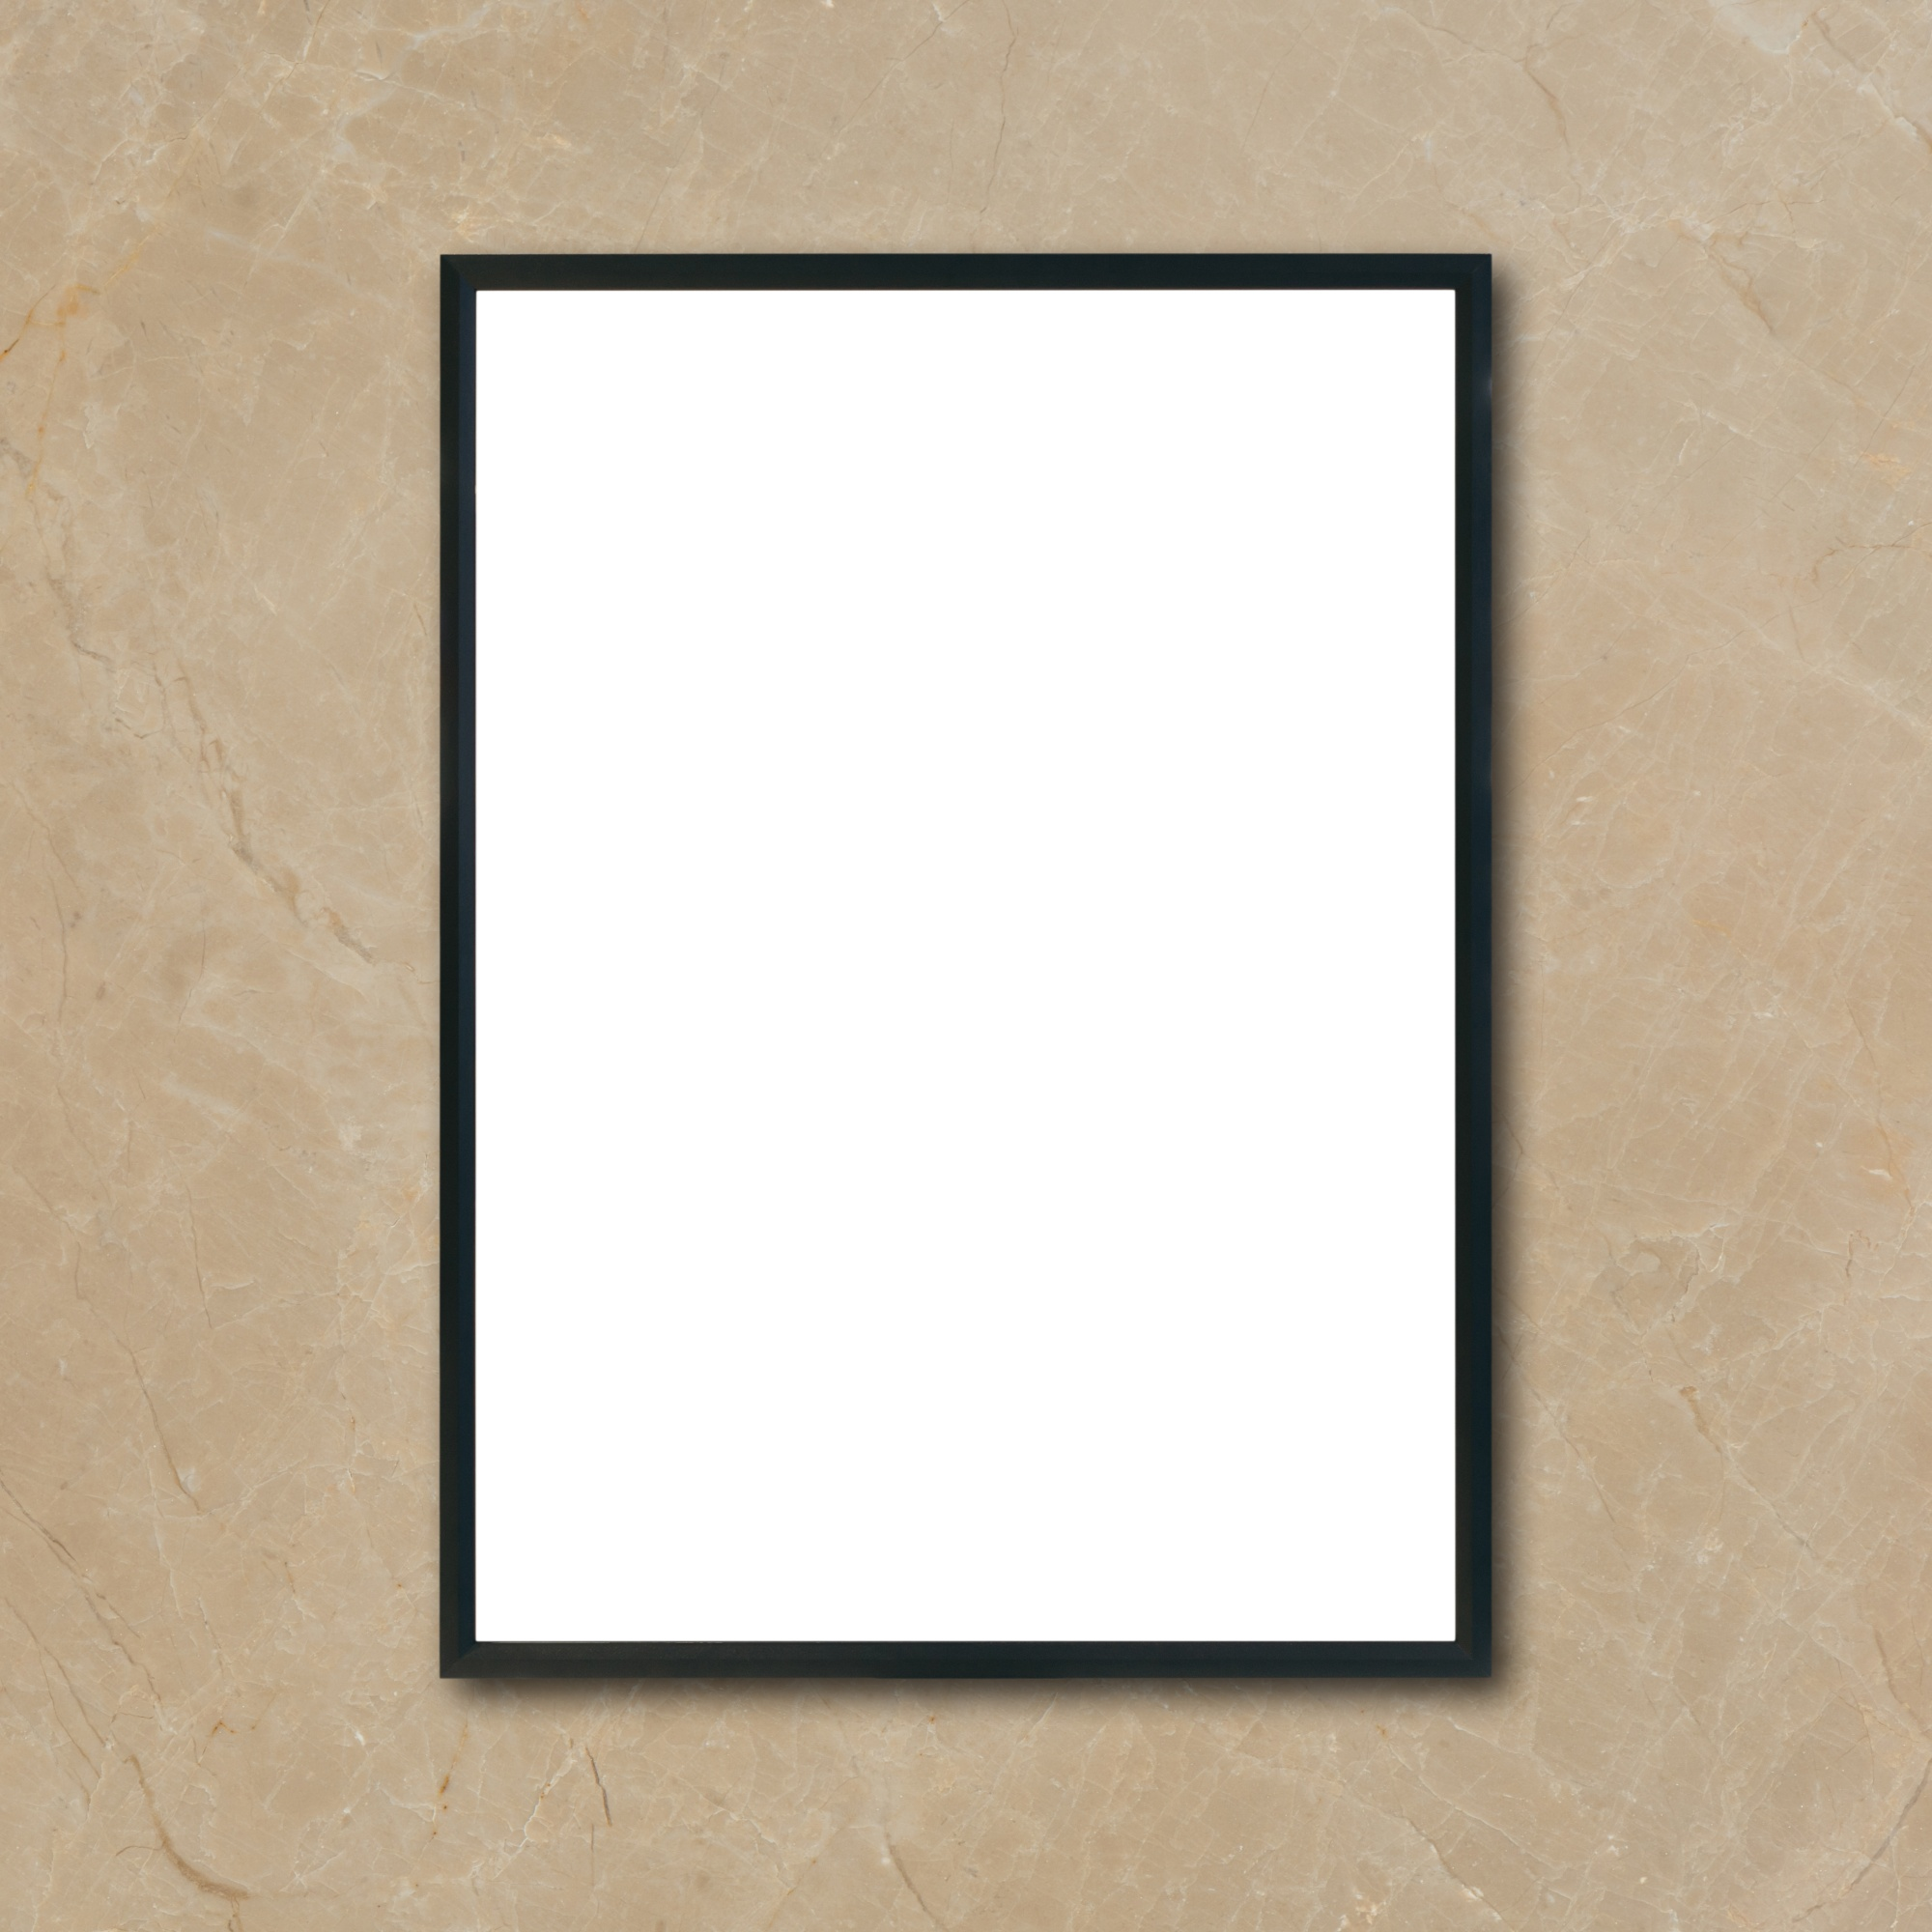 Mock up blank poster picture frame hanging on brown marble wall in room - can be used mockup for montage products display and design key visual layout.